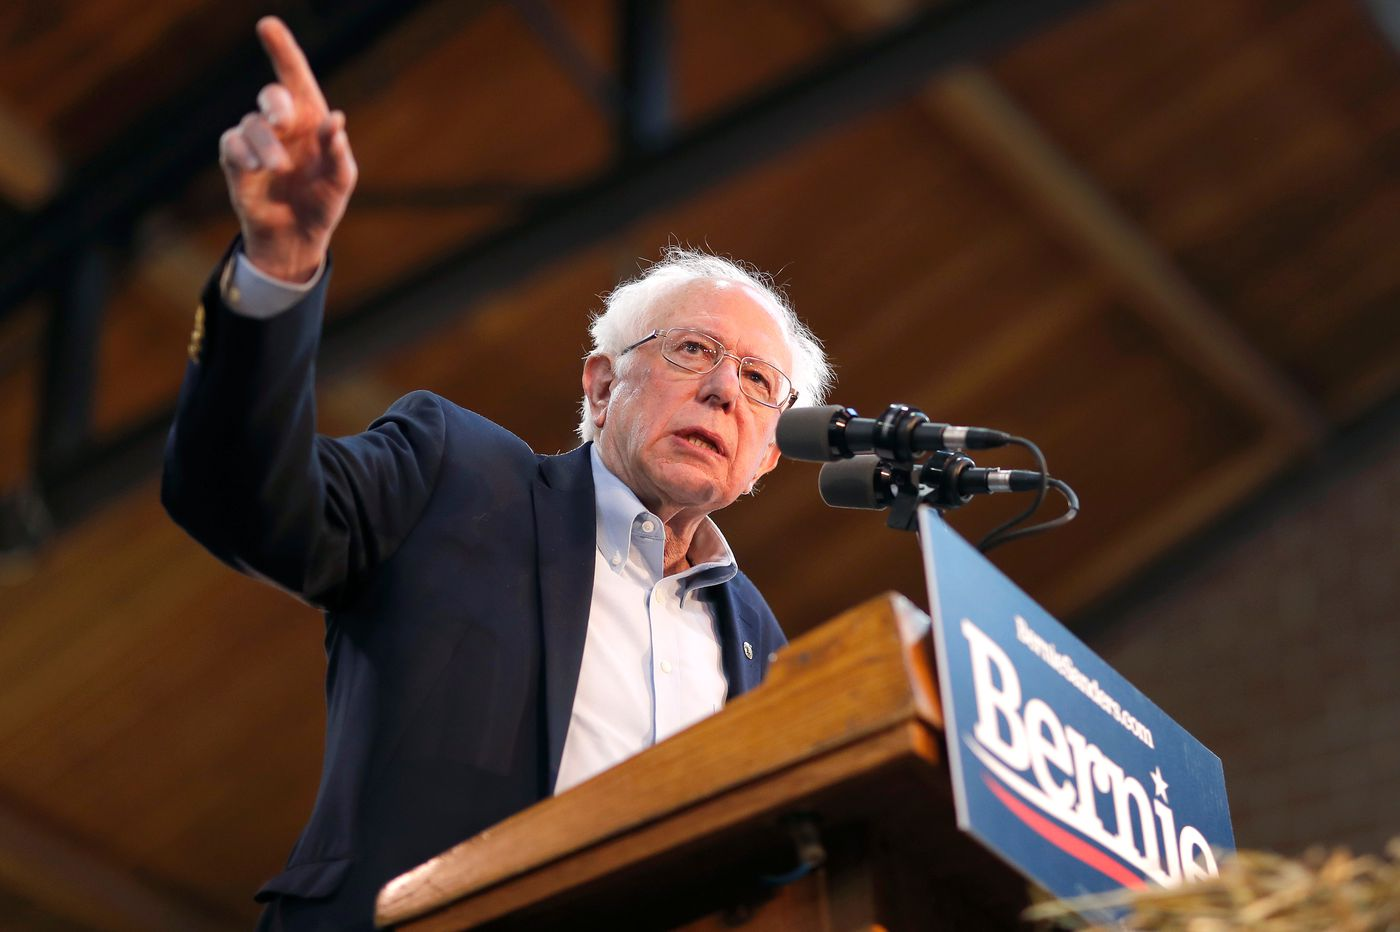 Bernie Sanders takes jabs at Donald Trump while other Democrats avoid president's name